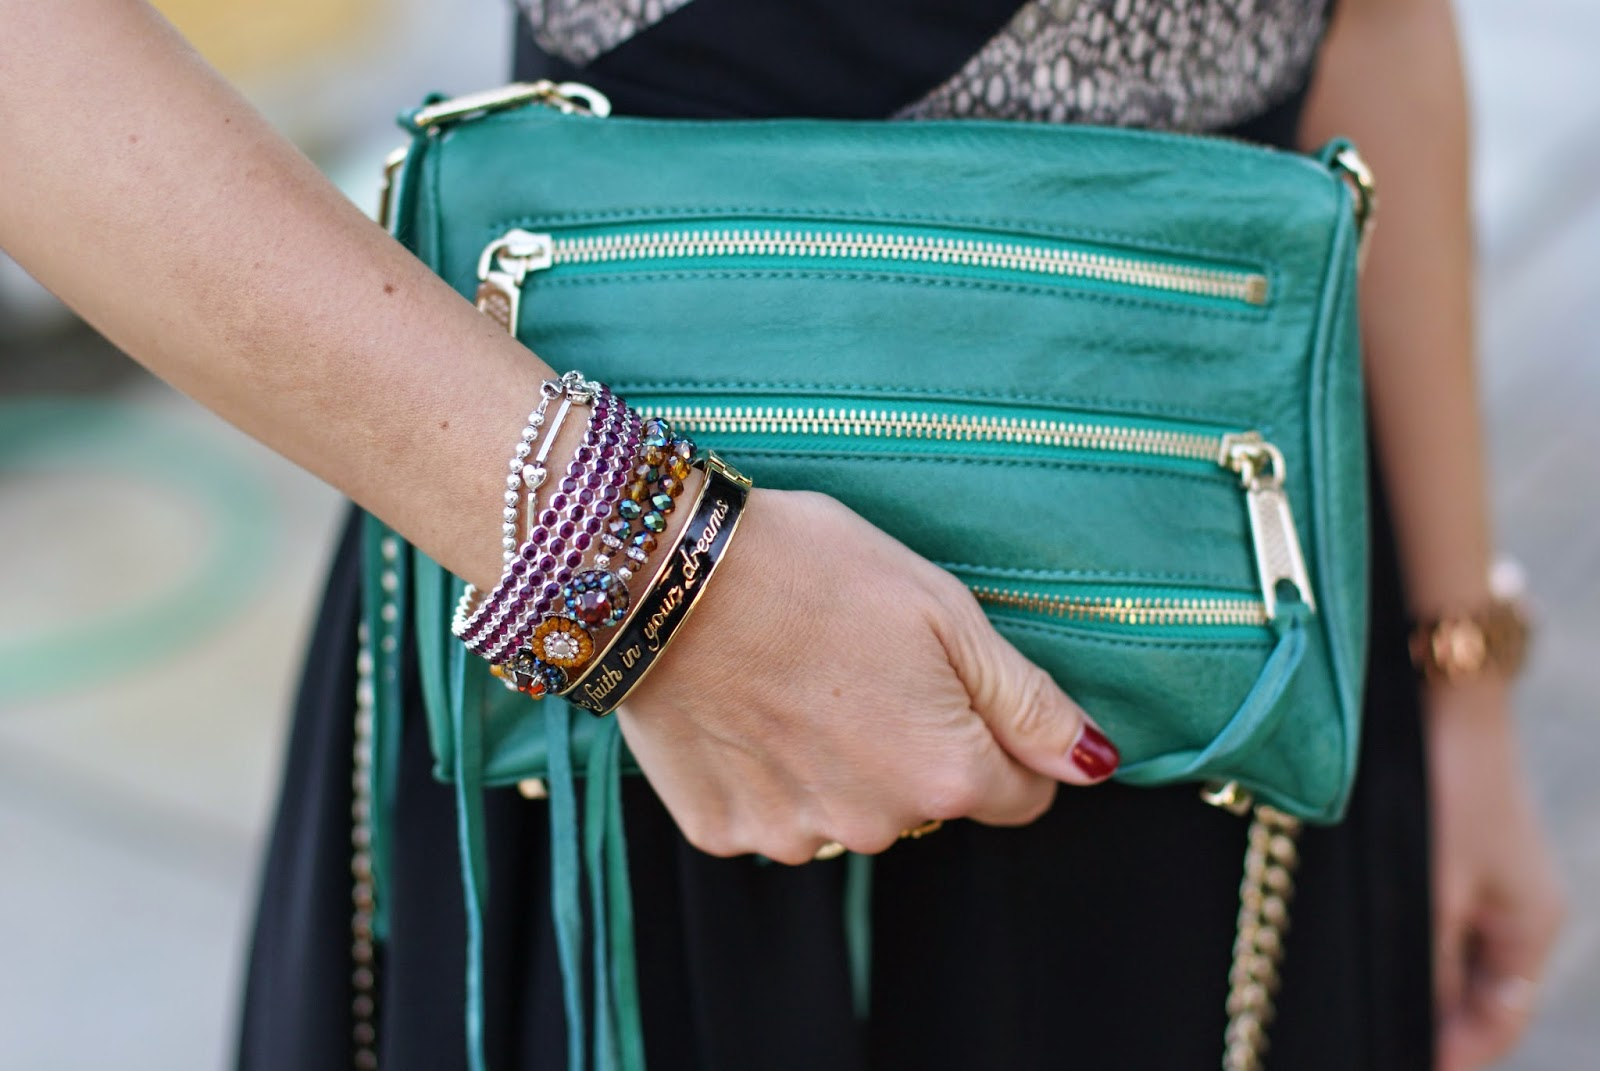 Rebecca Minkoff 5 zip bag, Luca Barra gioielli, Sodini bracciale, Fashion and Cookies, fashion blogger